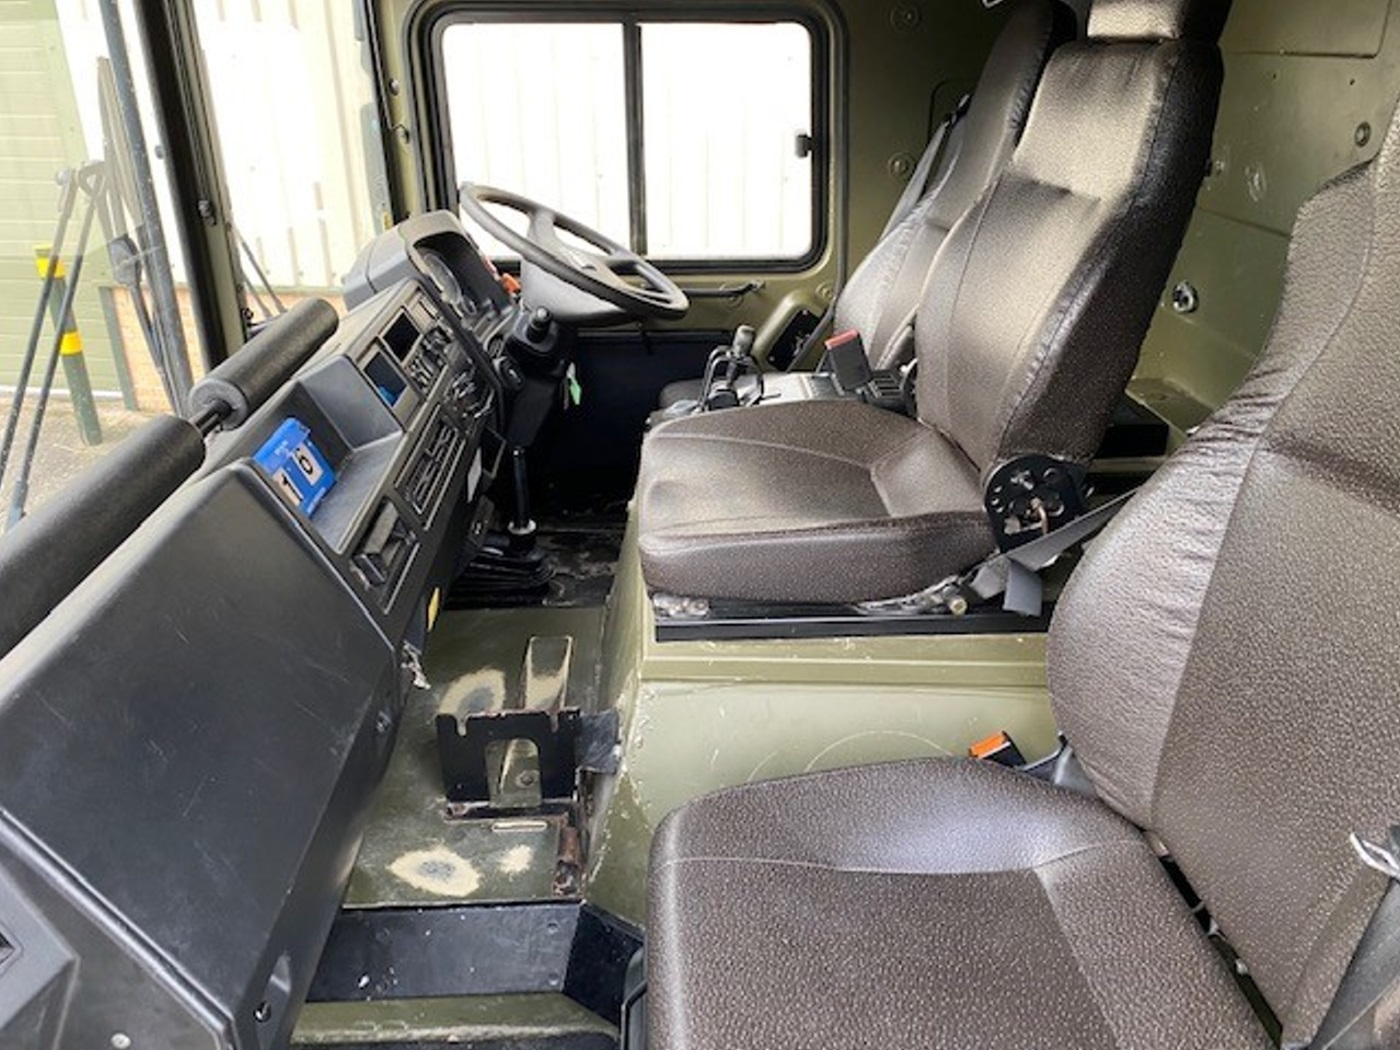 MAN HX60 18.330 4x4 Flat Bed Cargo Truck   used military vehicles, MOD surplus for sale